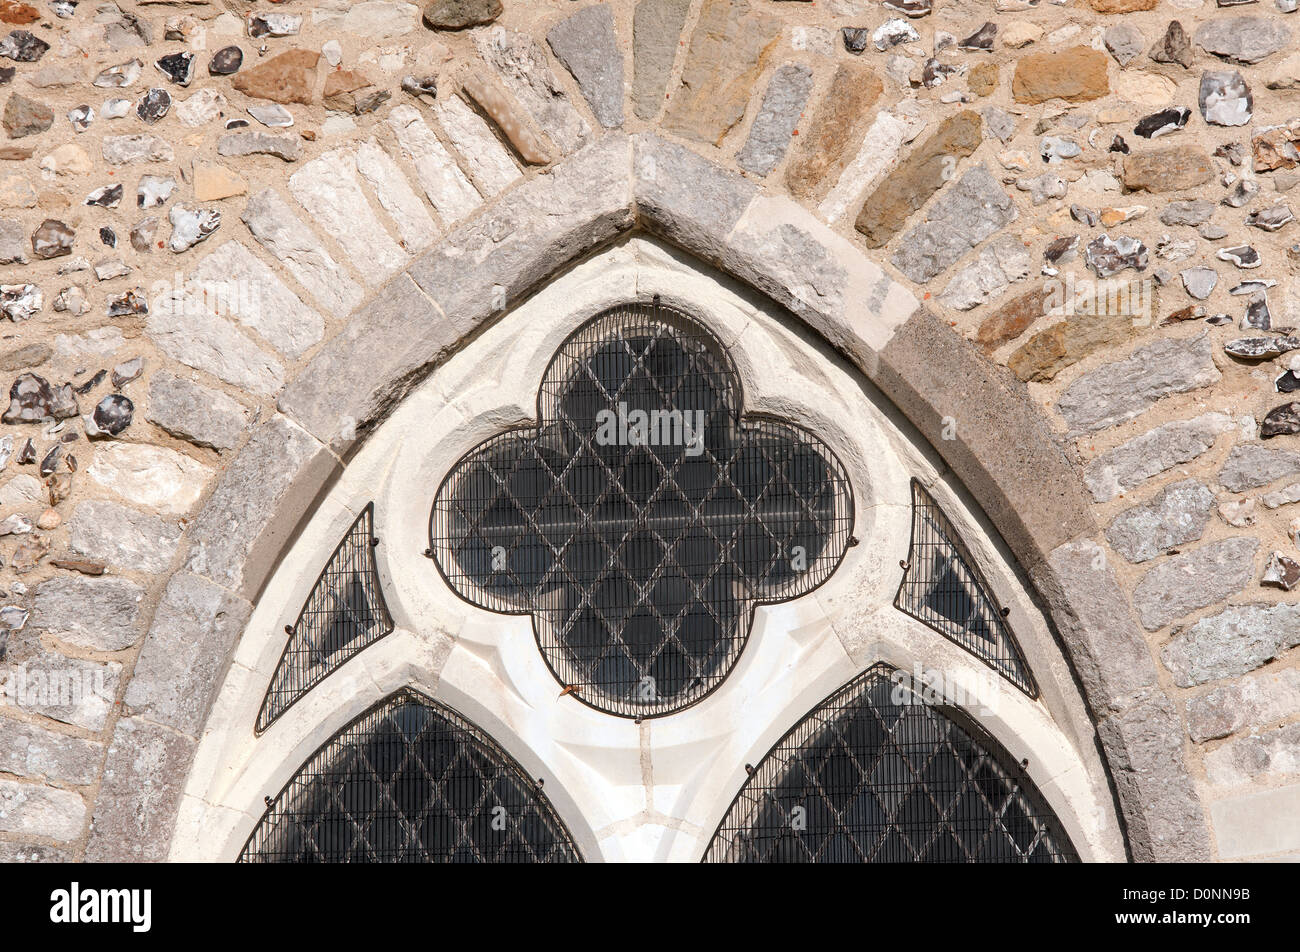 Palladium Stone Around Window : Detail of stone and flint work around an old arched window